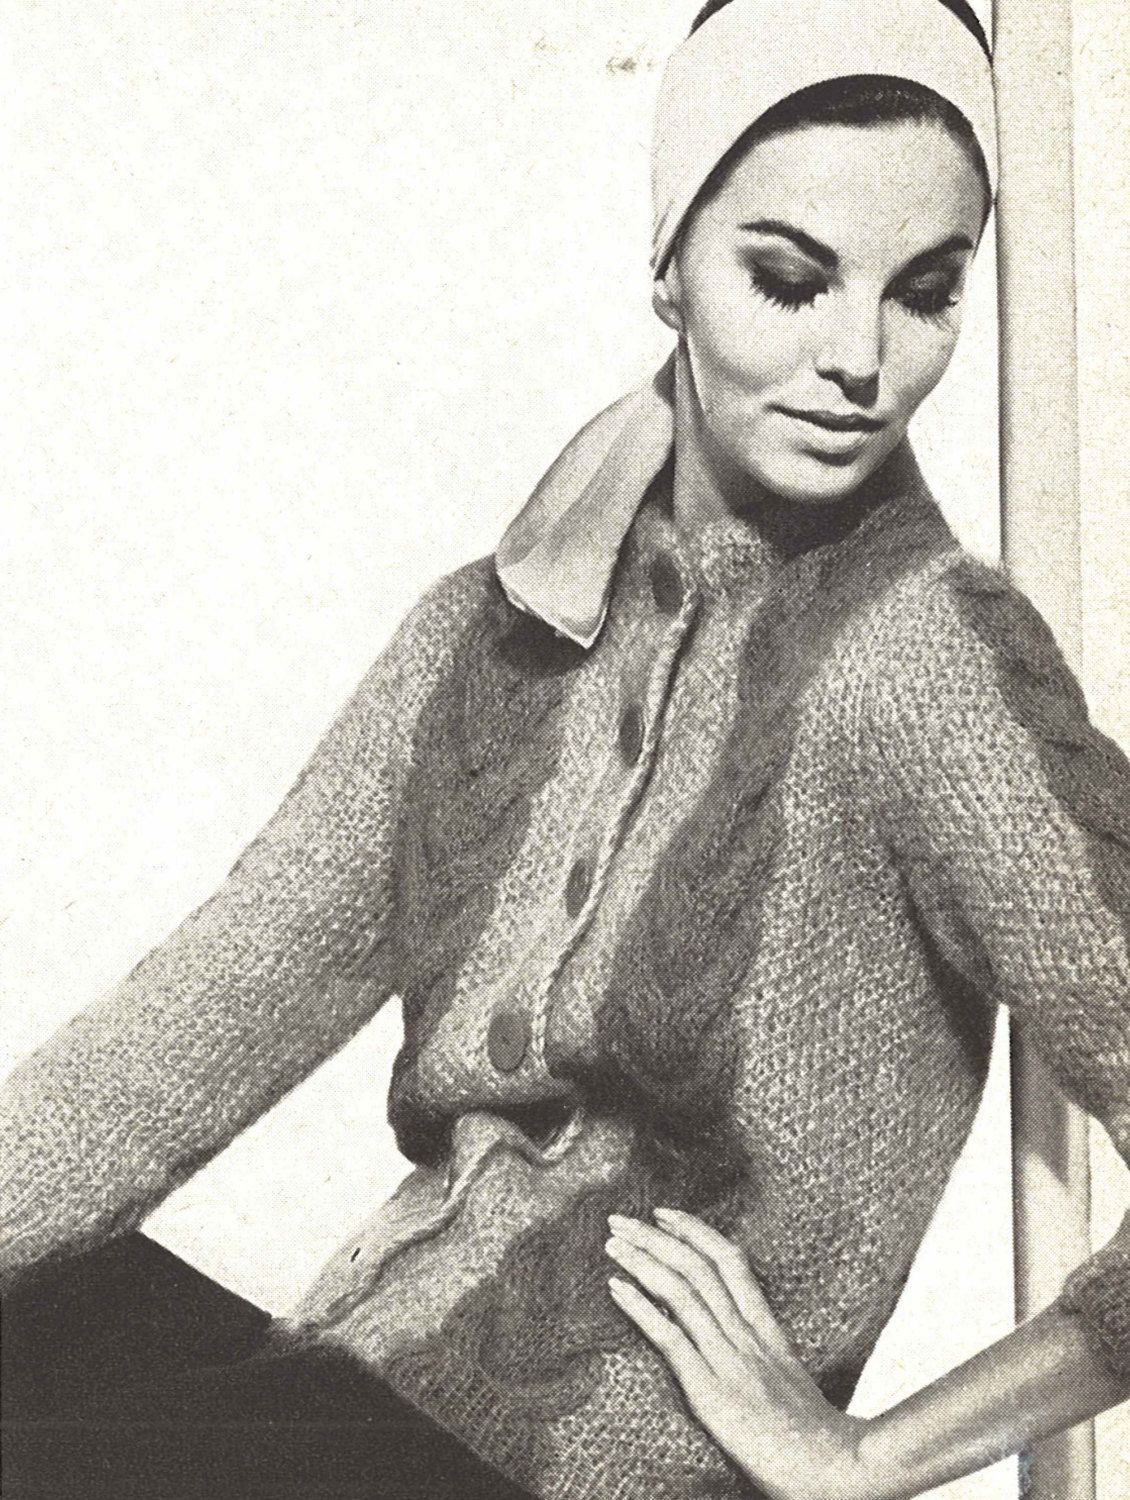 Mohair cardigan 1960s knitting cabled sweater coat jacket mohair cardigan 1960s knitting cabled sweater coat jacket pattern vintage vogue cable knit 1961 womans digital pdf bankloansurffo Choice Image